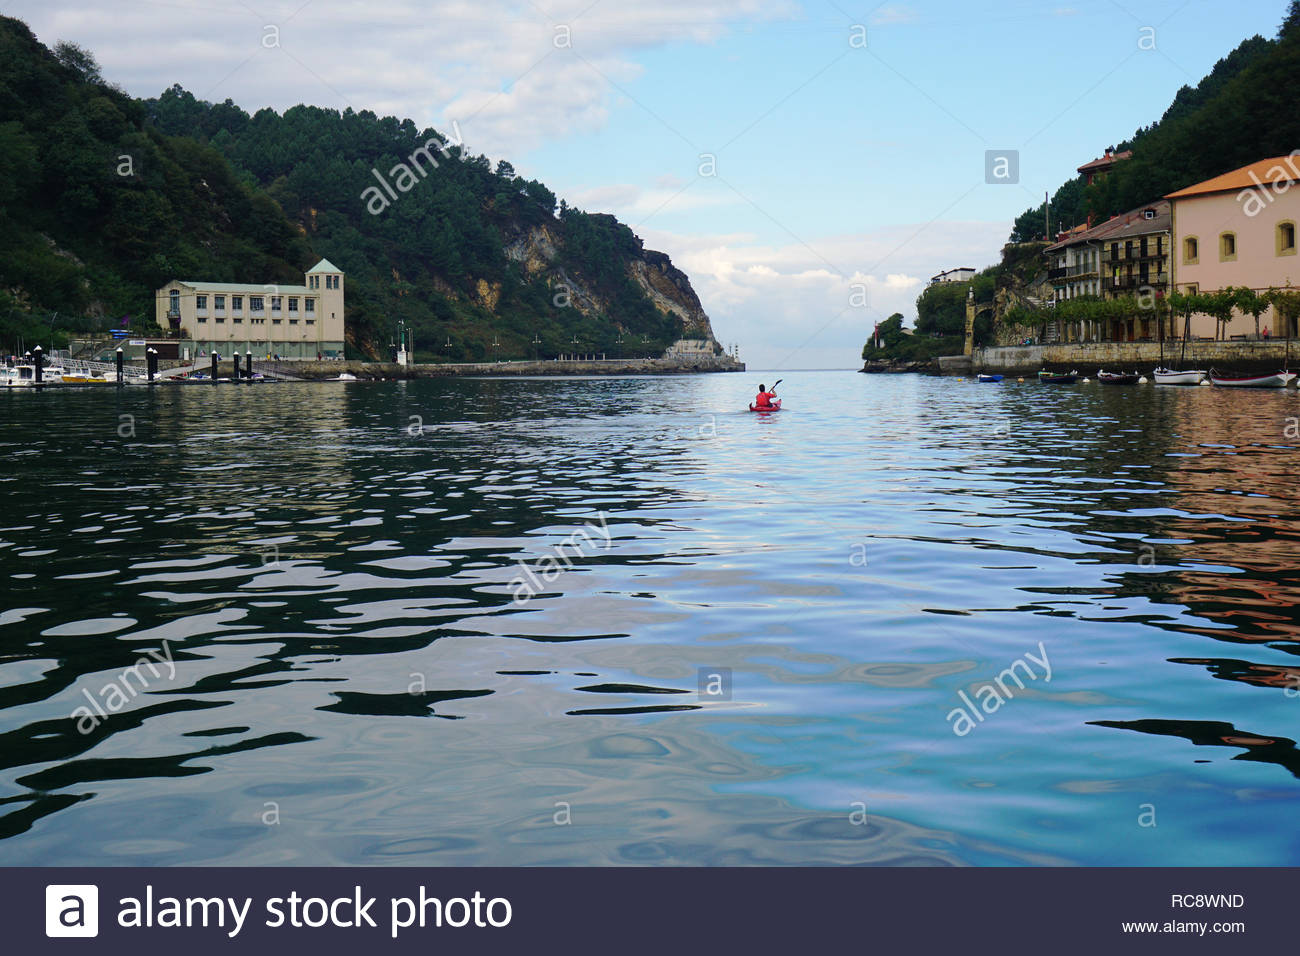 Red conoe on the river of the bay of pasaia in basque country in northern spain - Stock Image